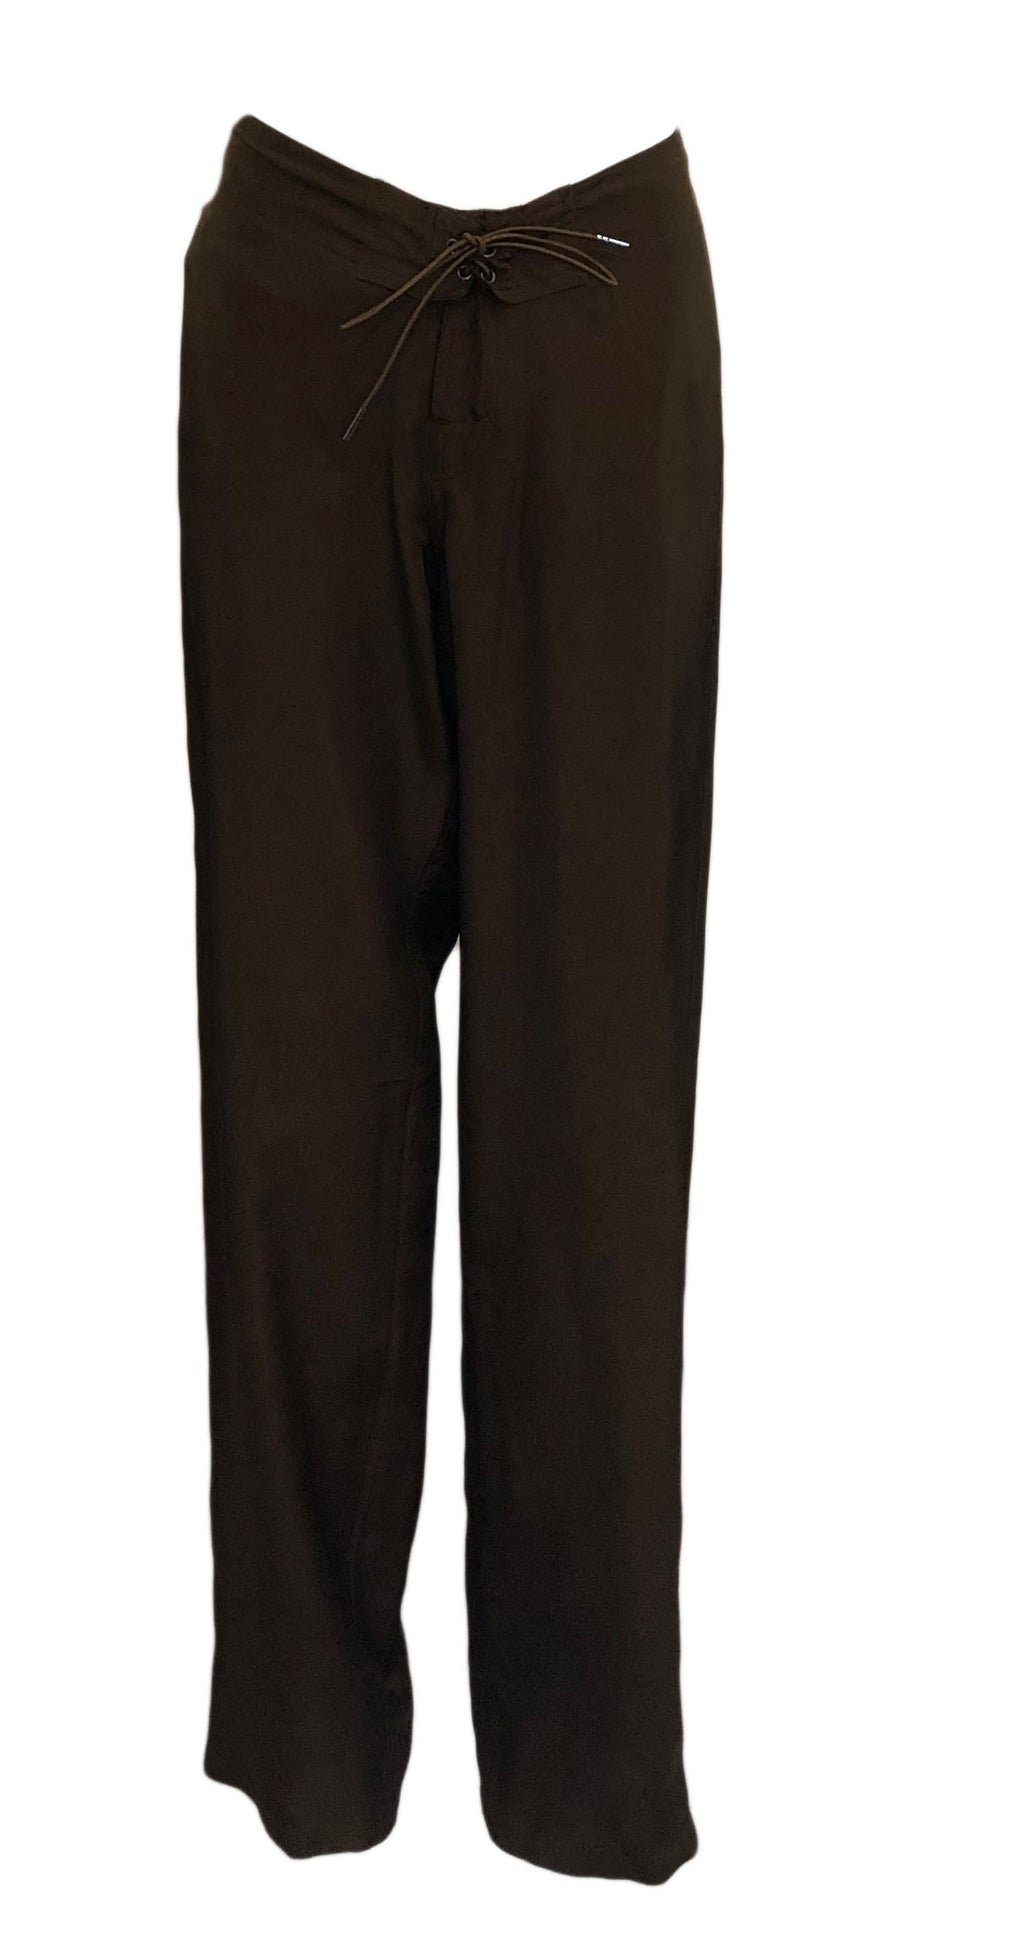 Tom Ford for Gucci Brown Drawstring Pants, Front